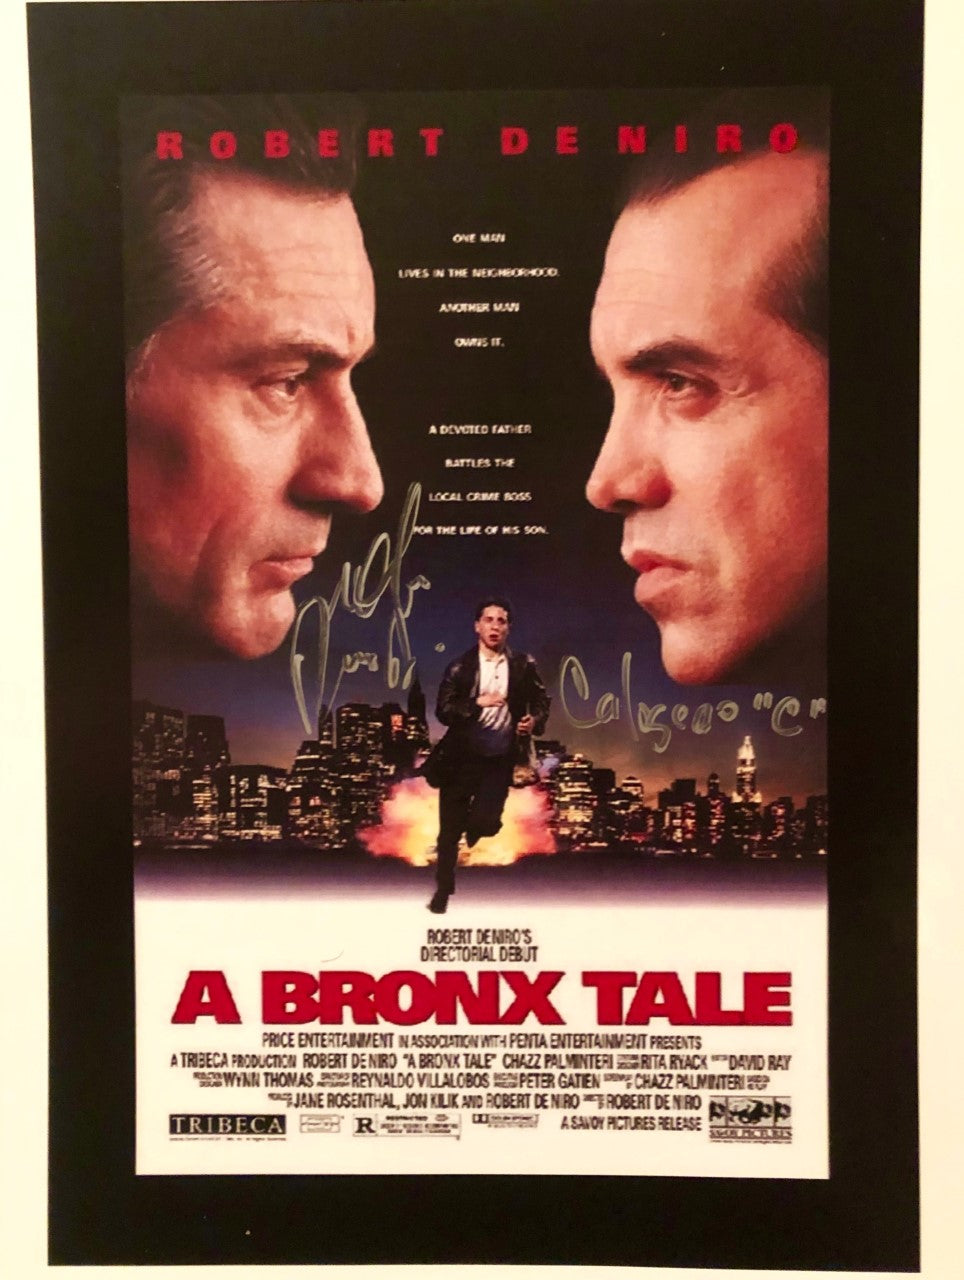 Lillo Brancato A Bronx Tale Signed 8x10 photo w/ Calogero Inscription